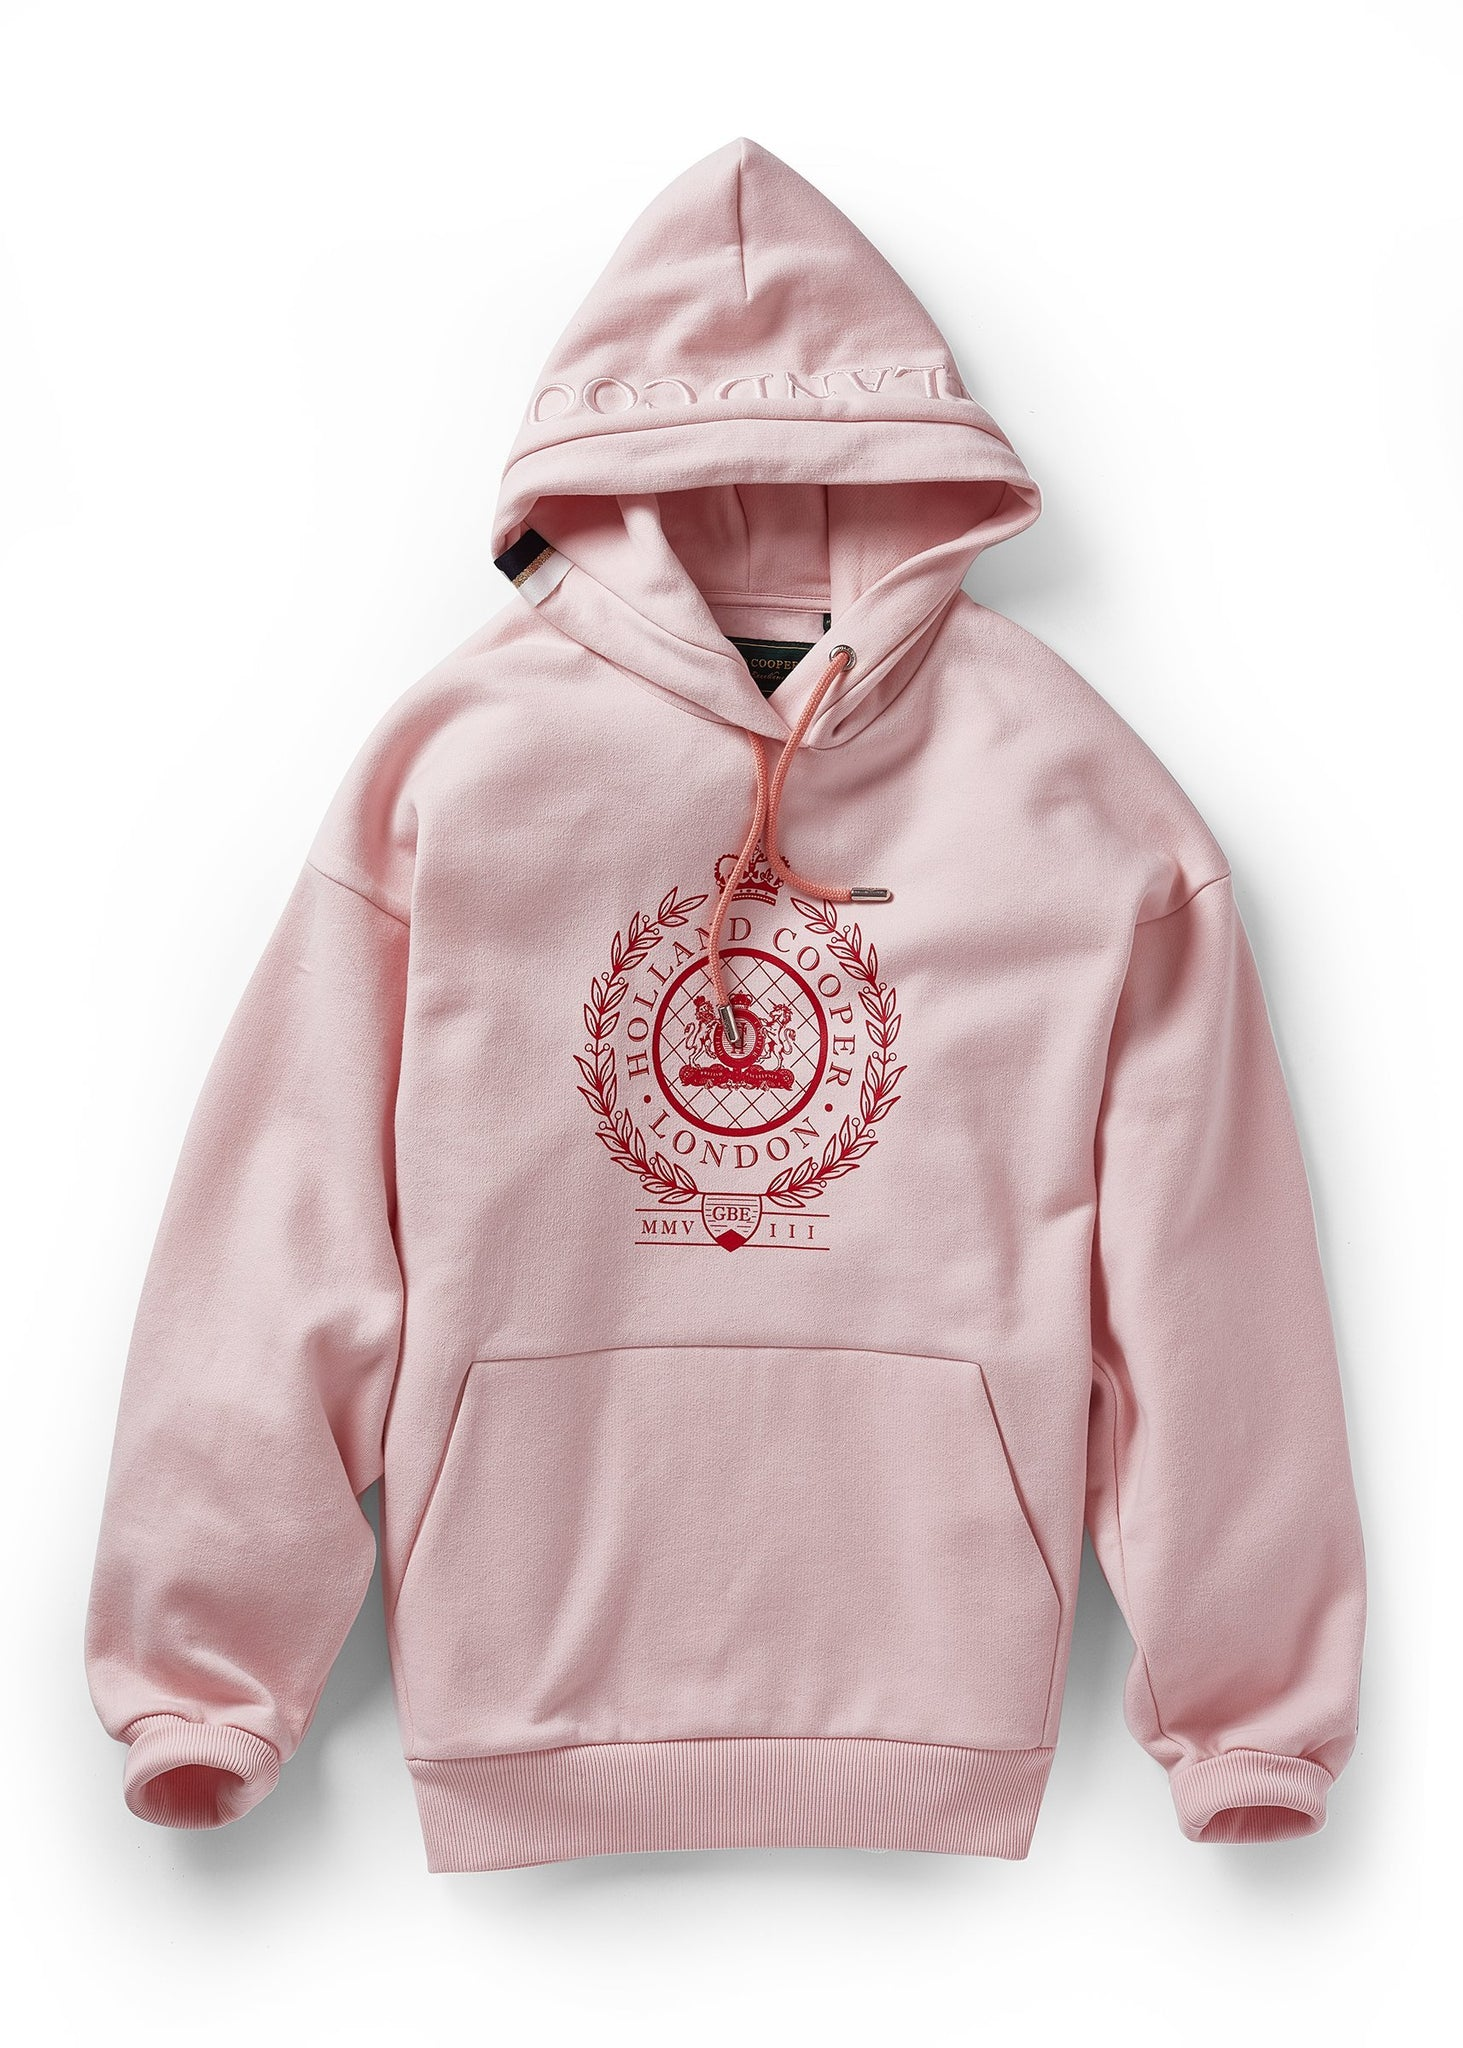 London Crest One Size Hoodie (Blush Marl)